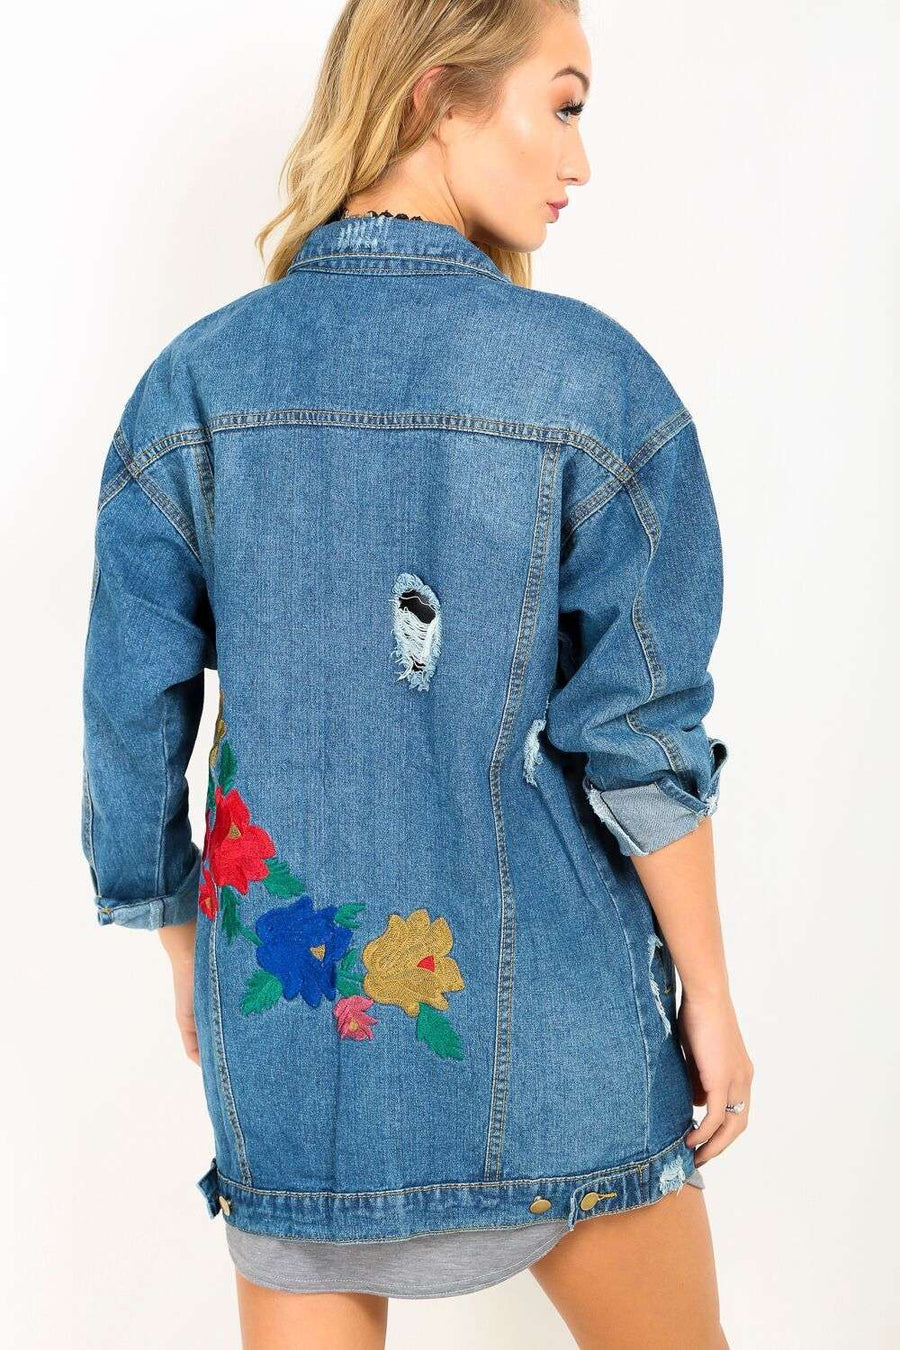 Keerah Embroidered Denim Jacket - bejealous-com